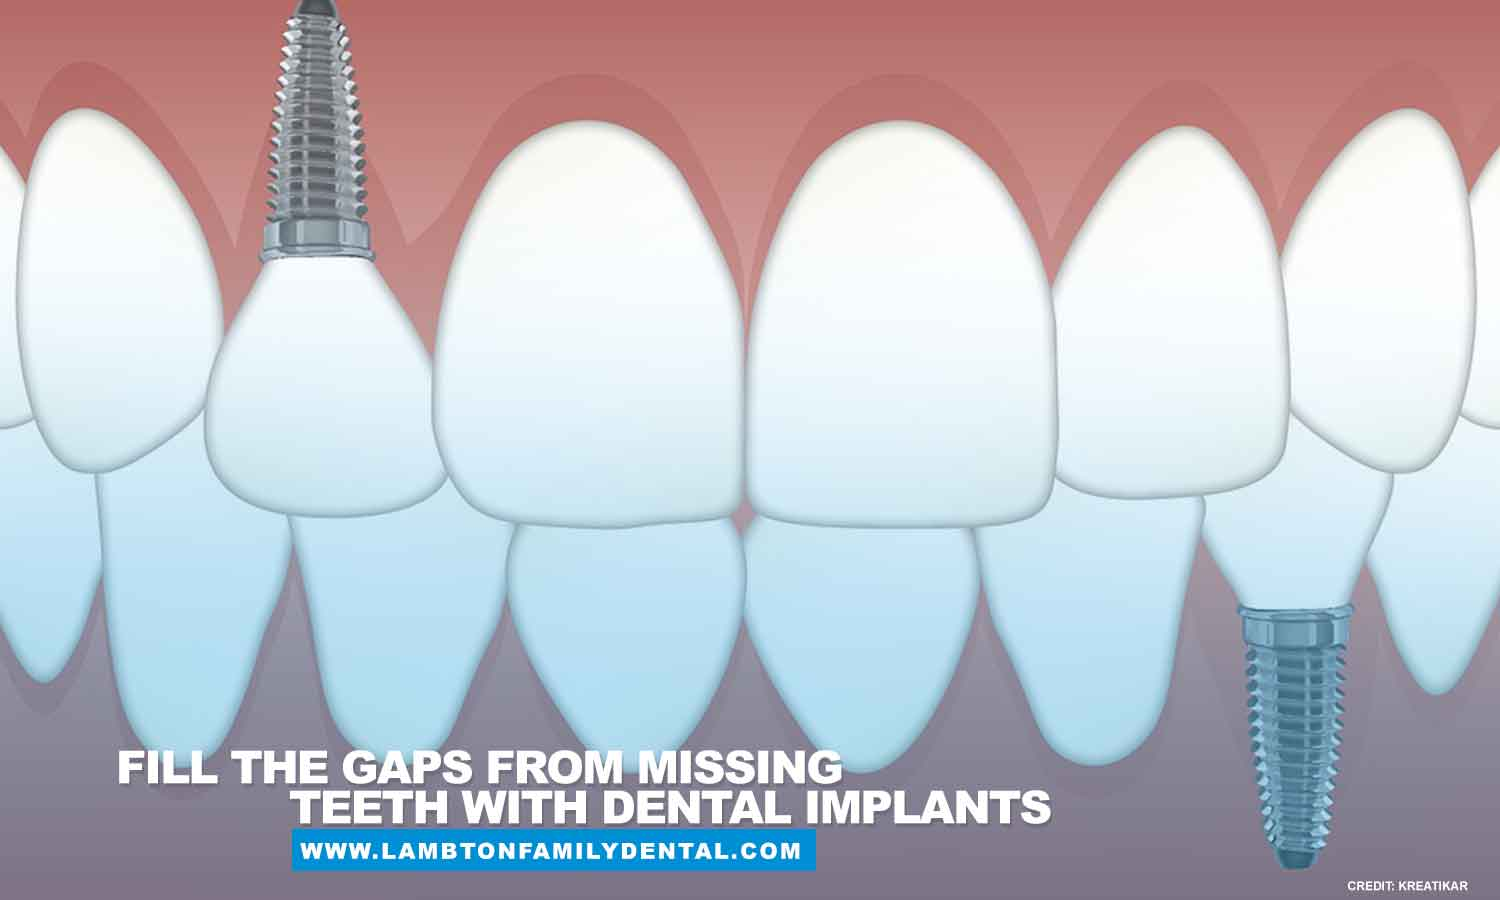 Fill the gaps from missing teeth